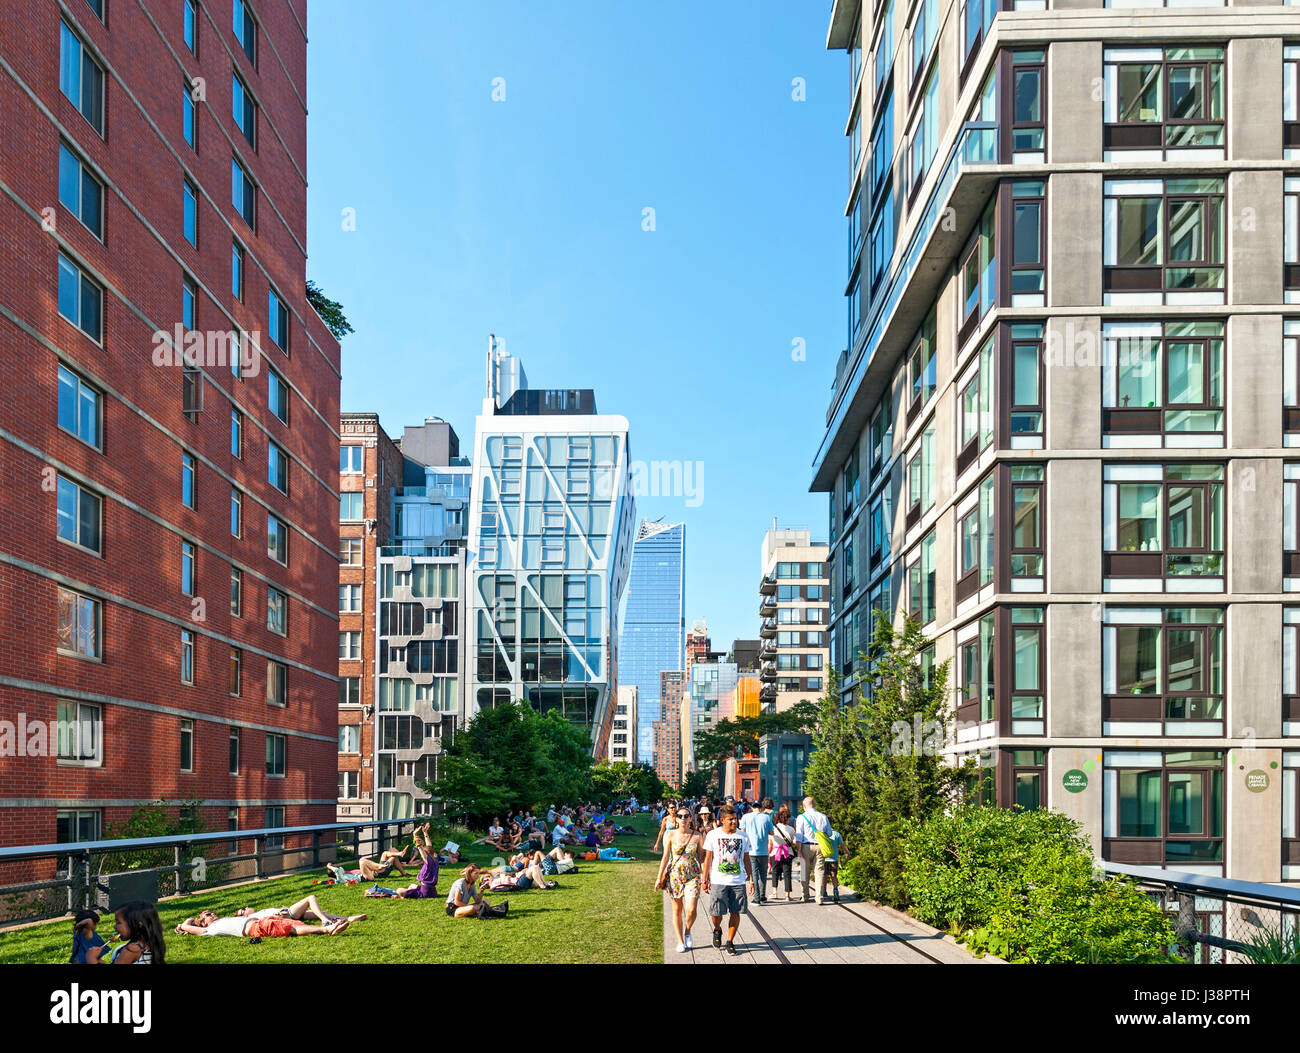 High Line-New York City-Chelsea-Manhattan Stockbild